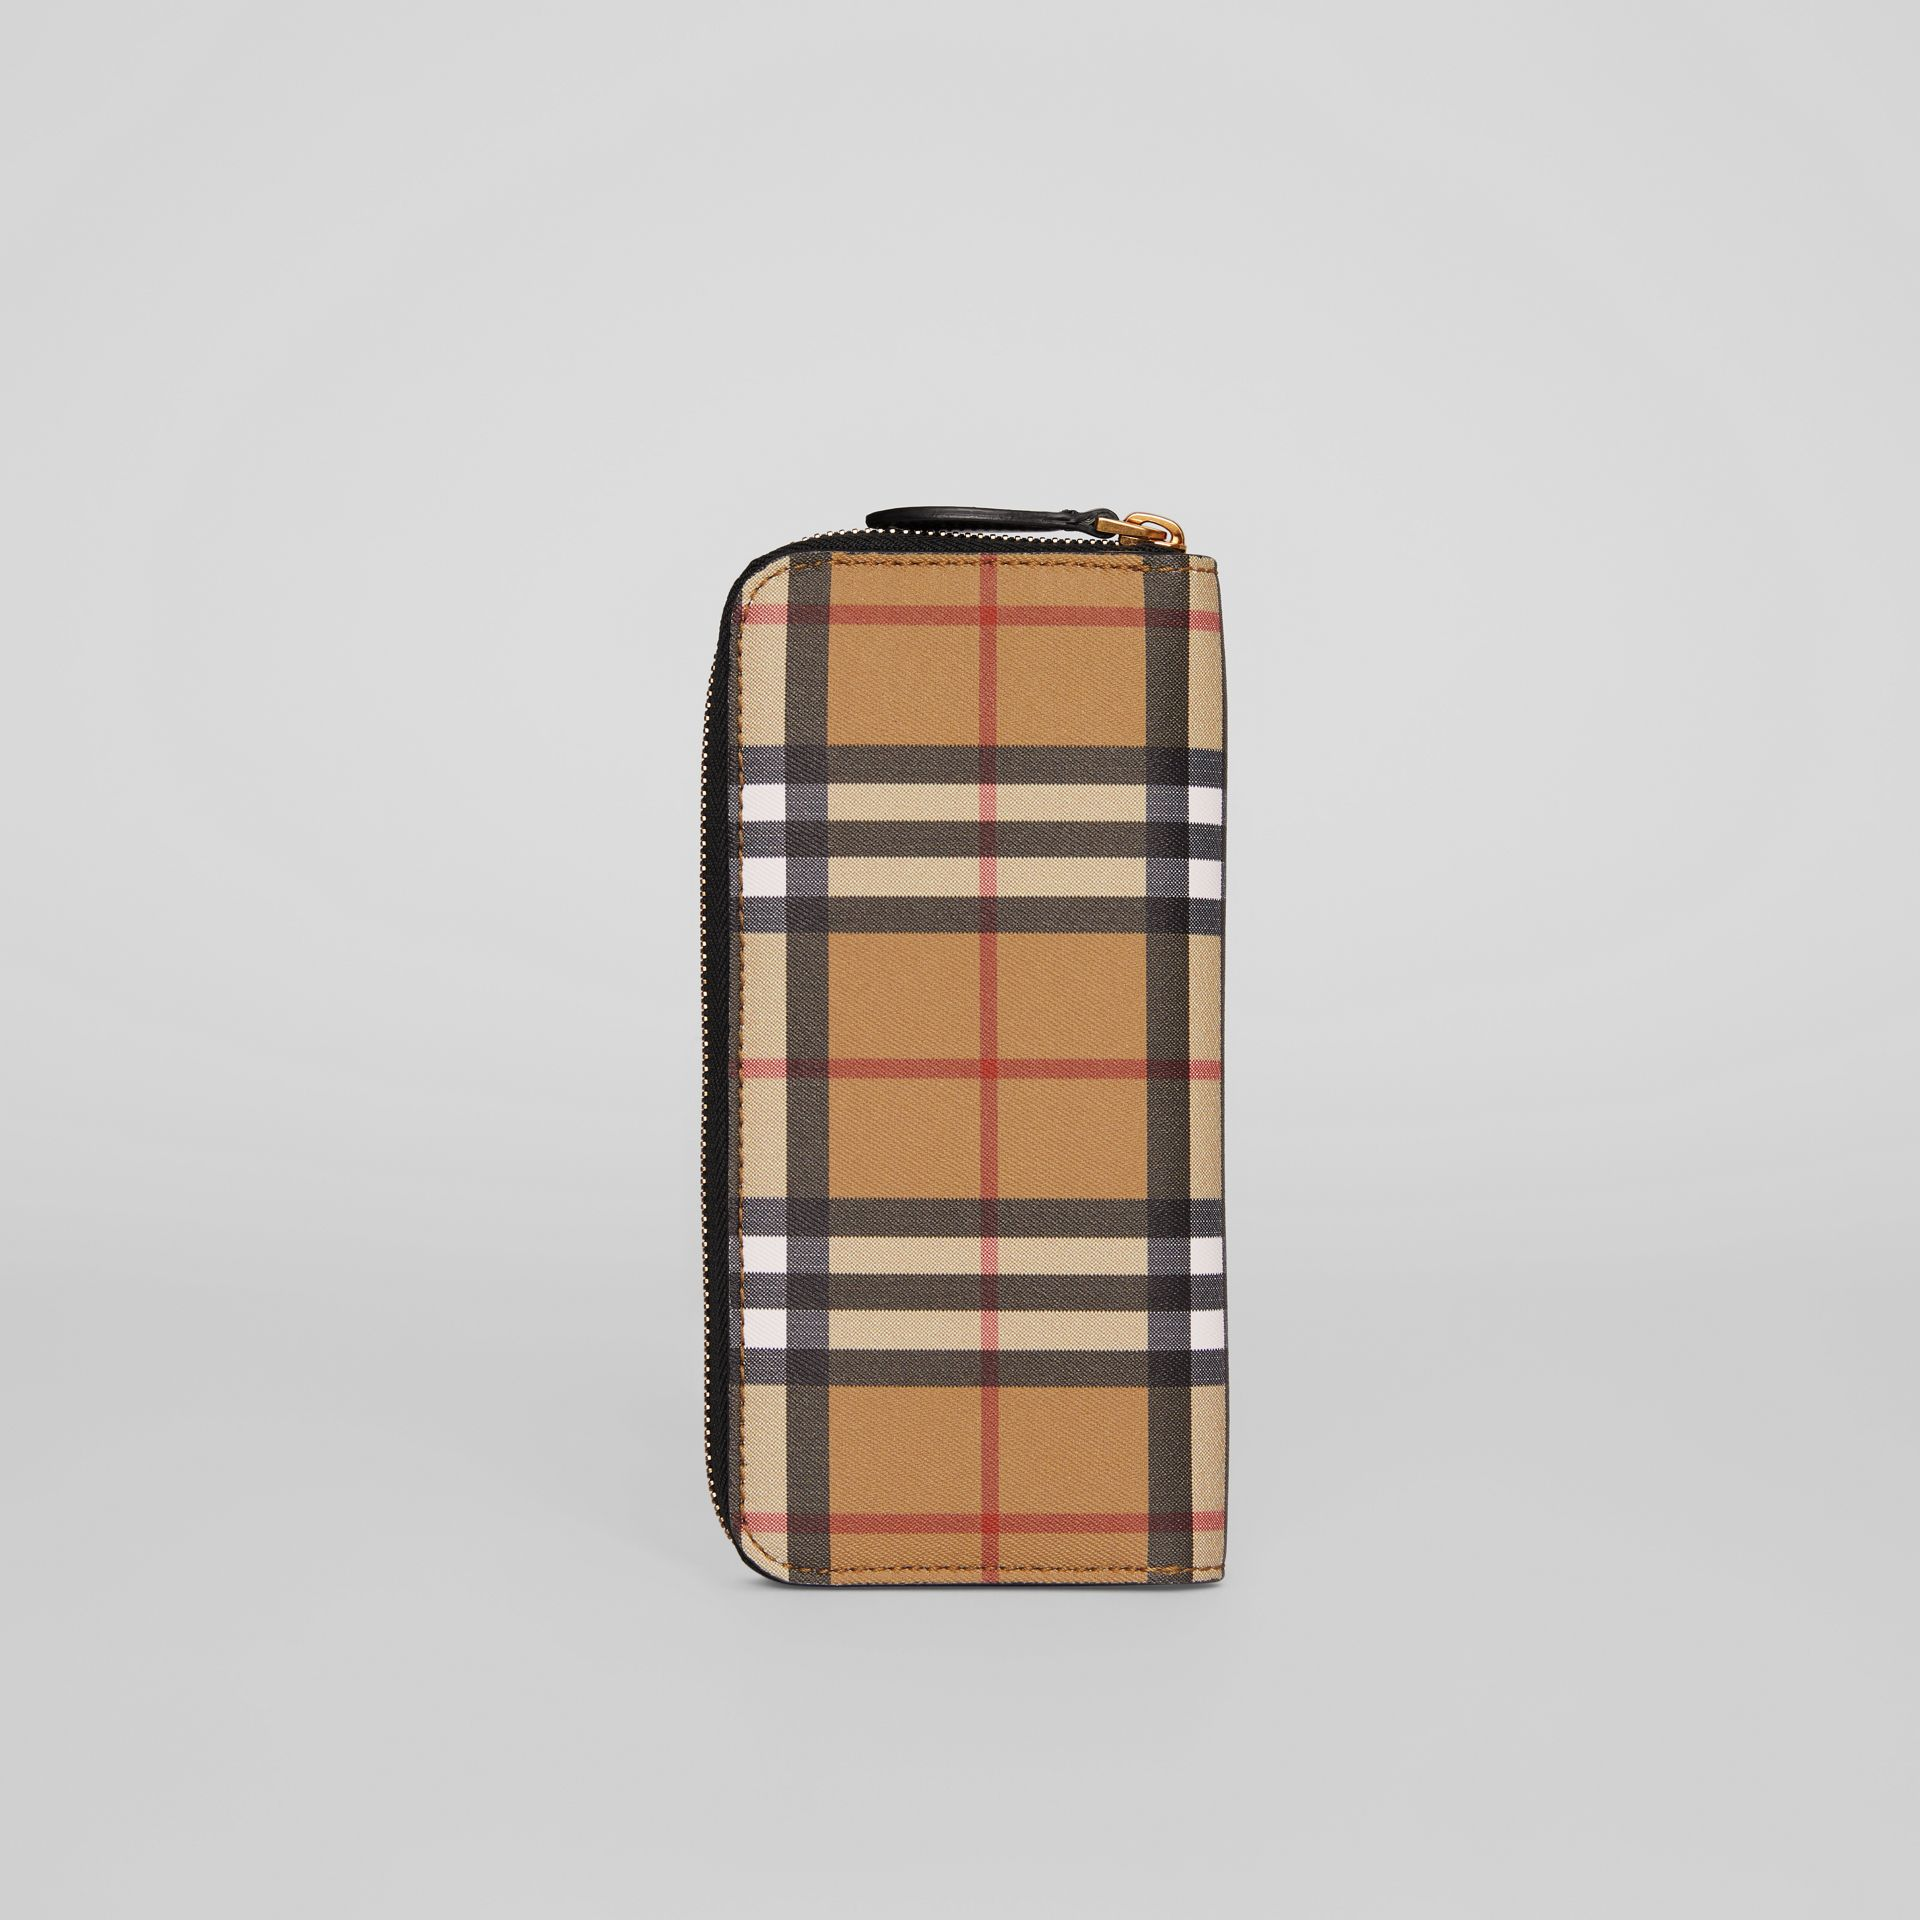 Vintage Check and Leather Ziparound Wallet in Black - Women | Burberry Australia - gallery image 5